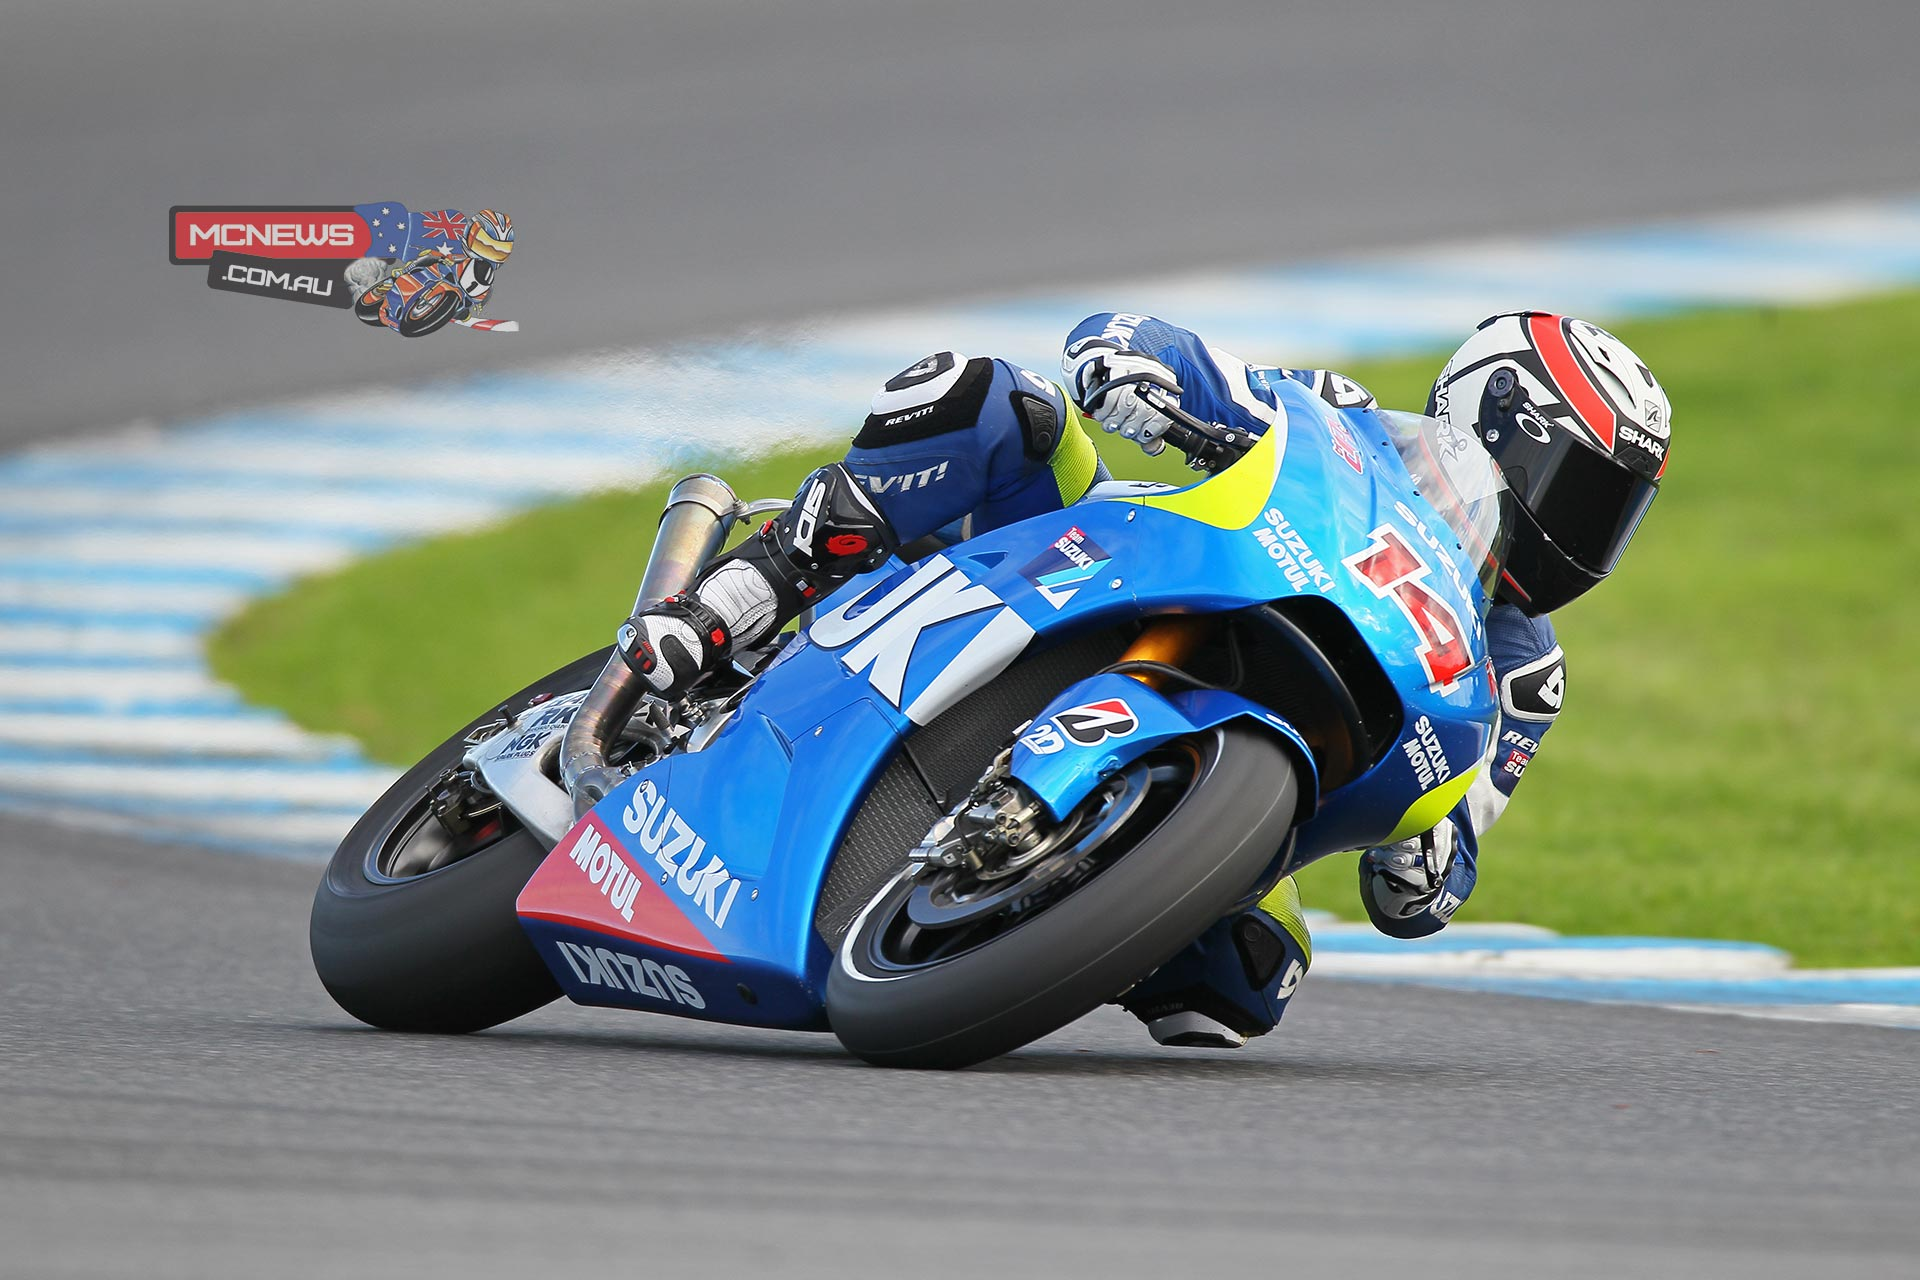 The Suzuki MotoGP team concluded its three-day test at Phillip Island in Australia today after rain and less-than-perfect track conditions hampered much of the progress the riders and technicians hoped to make.